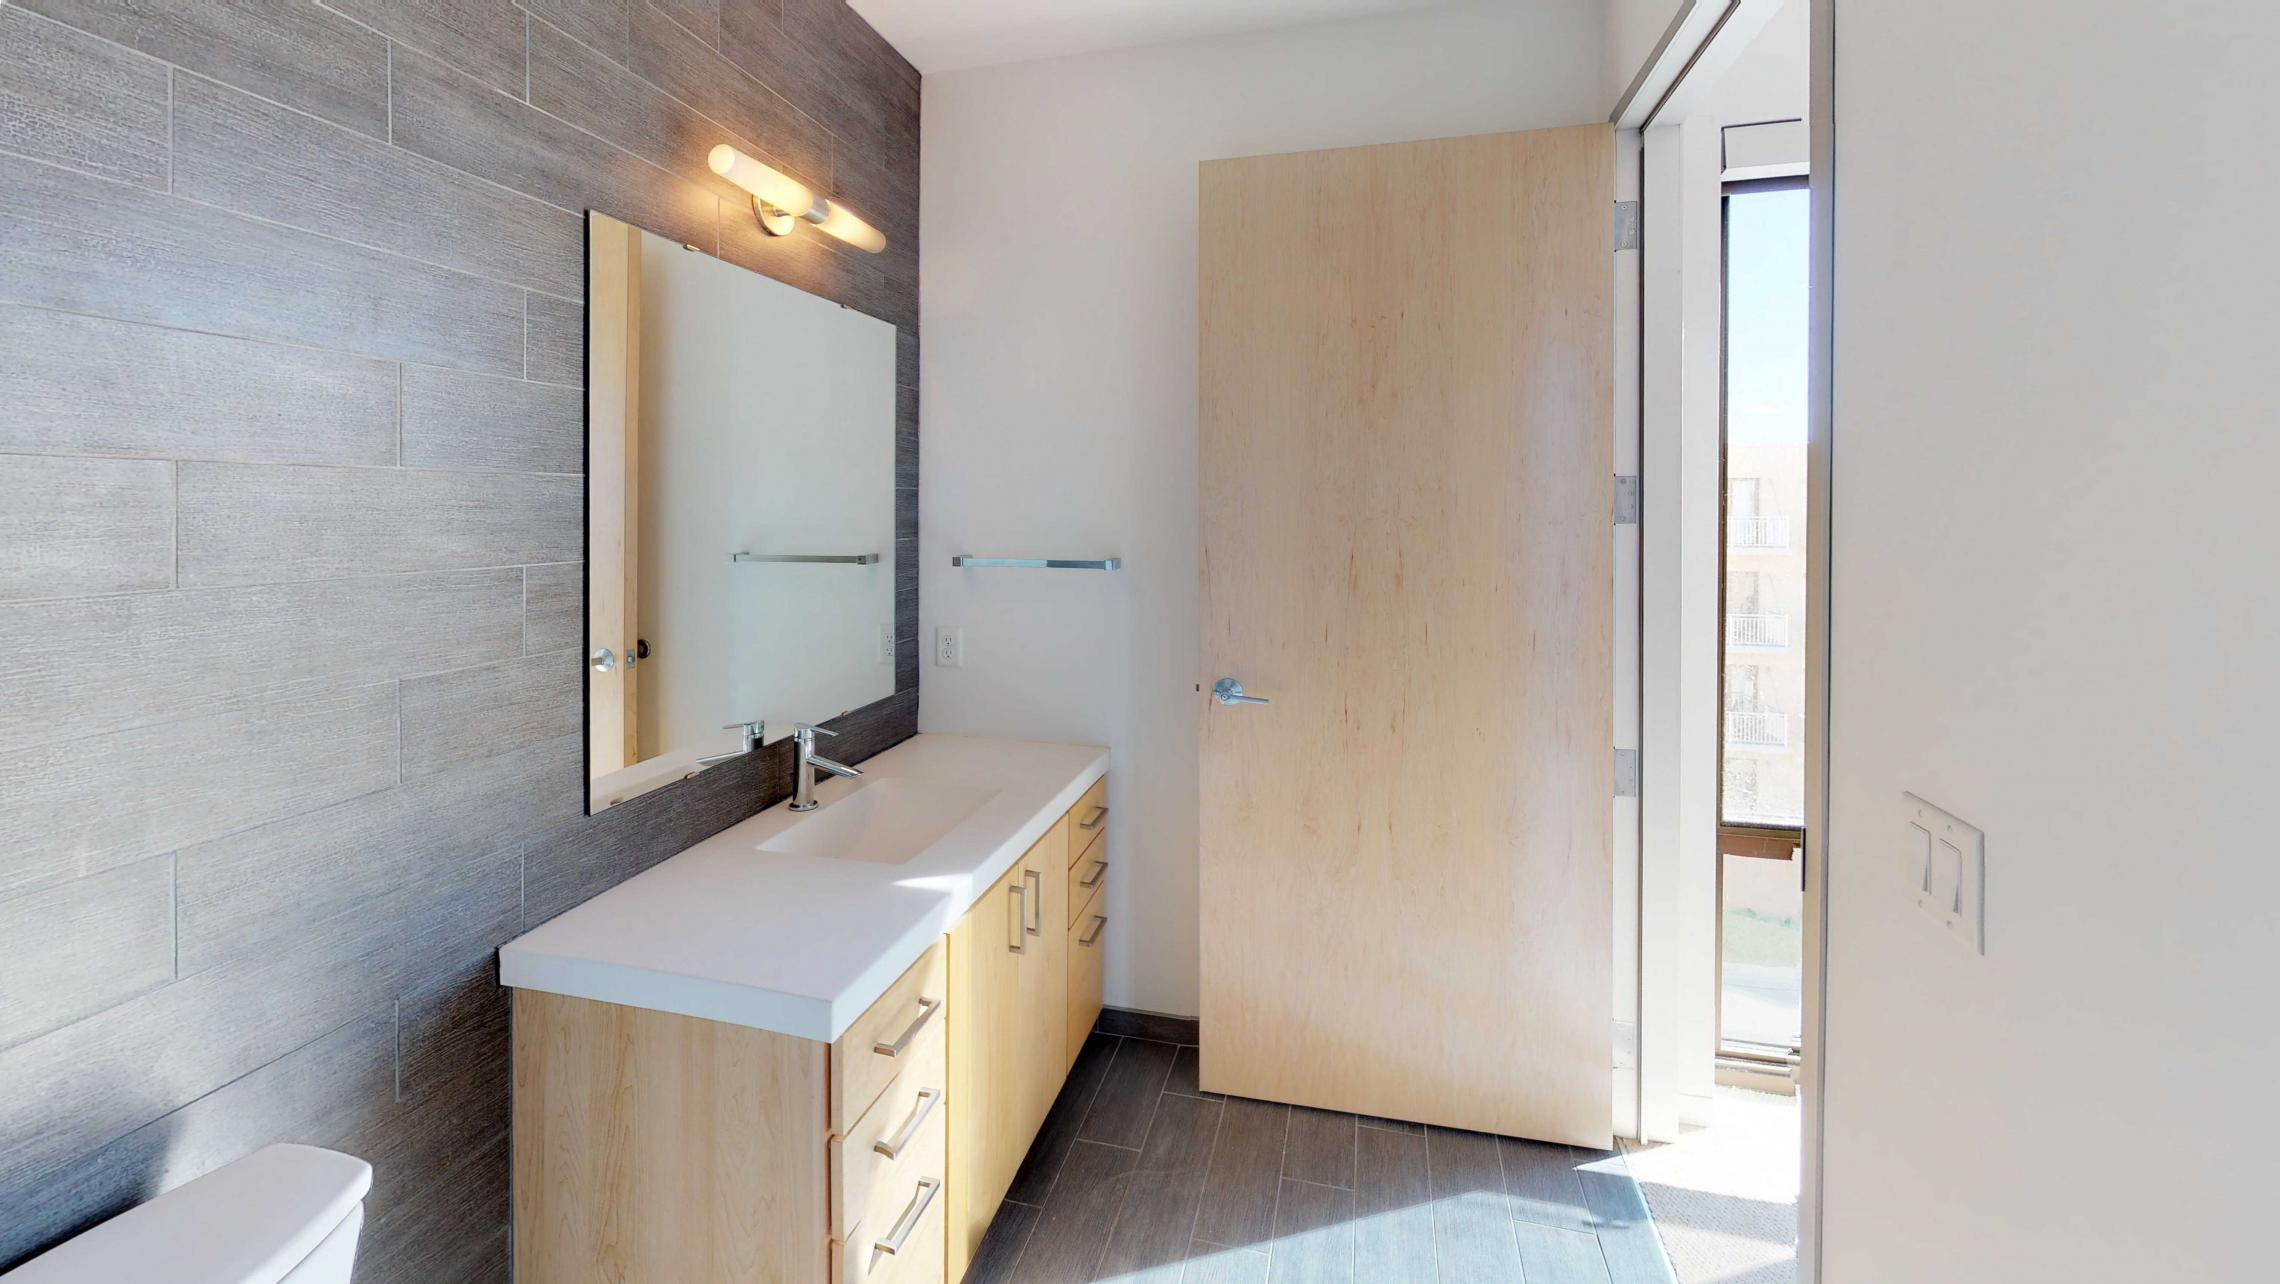 SEVEN27-Apartment-524-two bedroom-Modern-Luxury-Upscale-Capitol View-Lake View-Top Floor-Balcony-Terrace-City View-Master - Bedroom-Closet.jpg